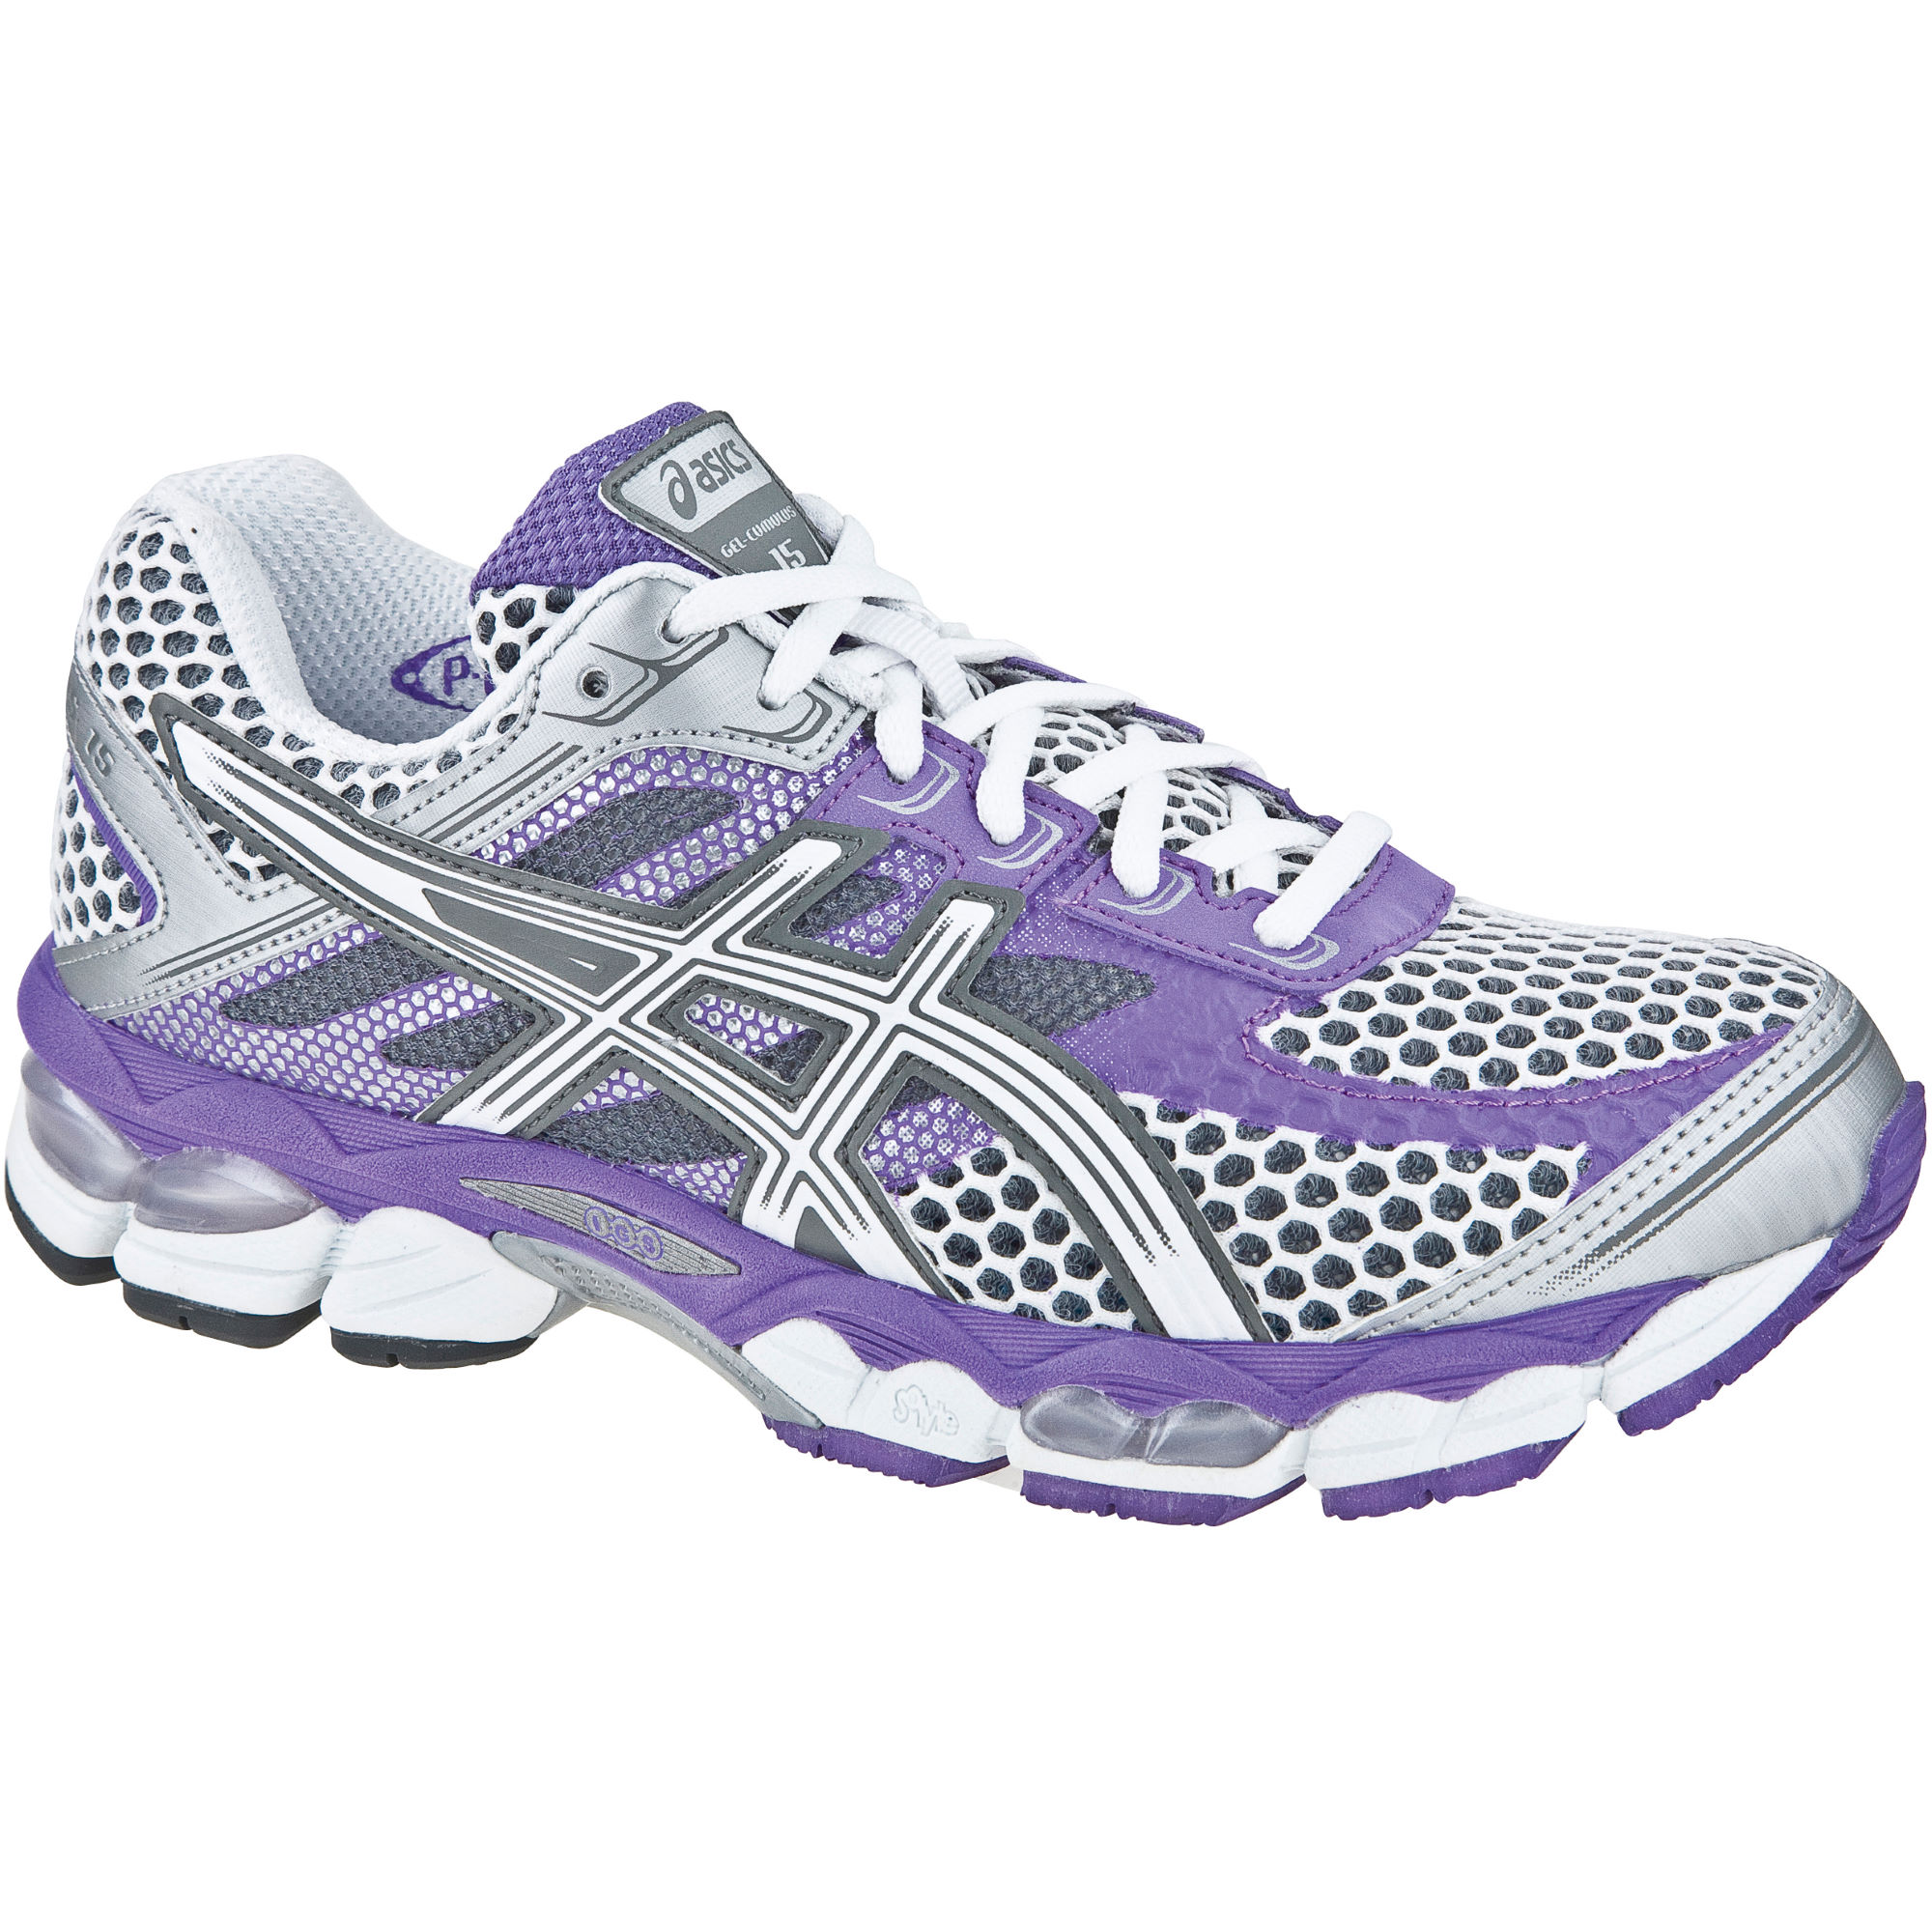 chaussures de running amorties asics ladies gel cumulus 15 shoes aw13 wiggle france. Black Bedroom Furniture Sets. Home Design Ideas